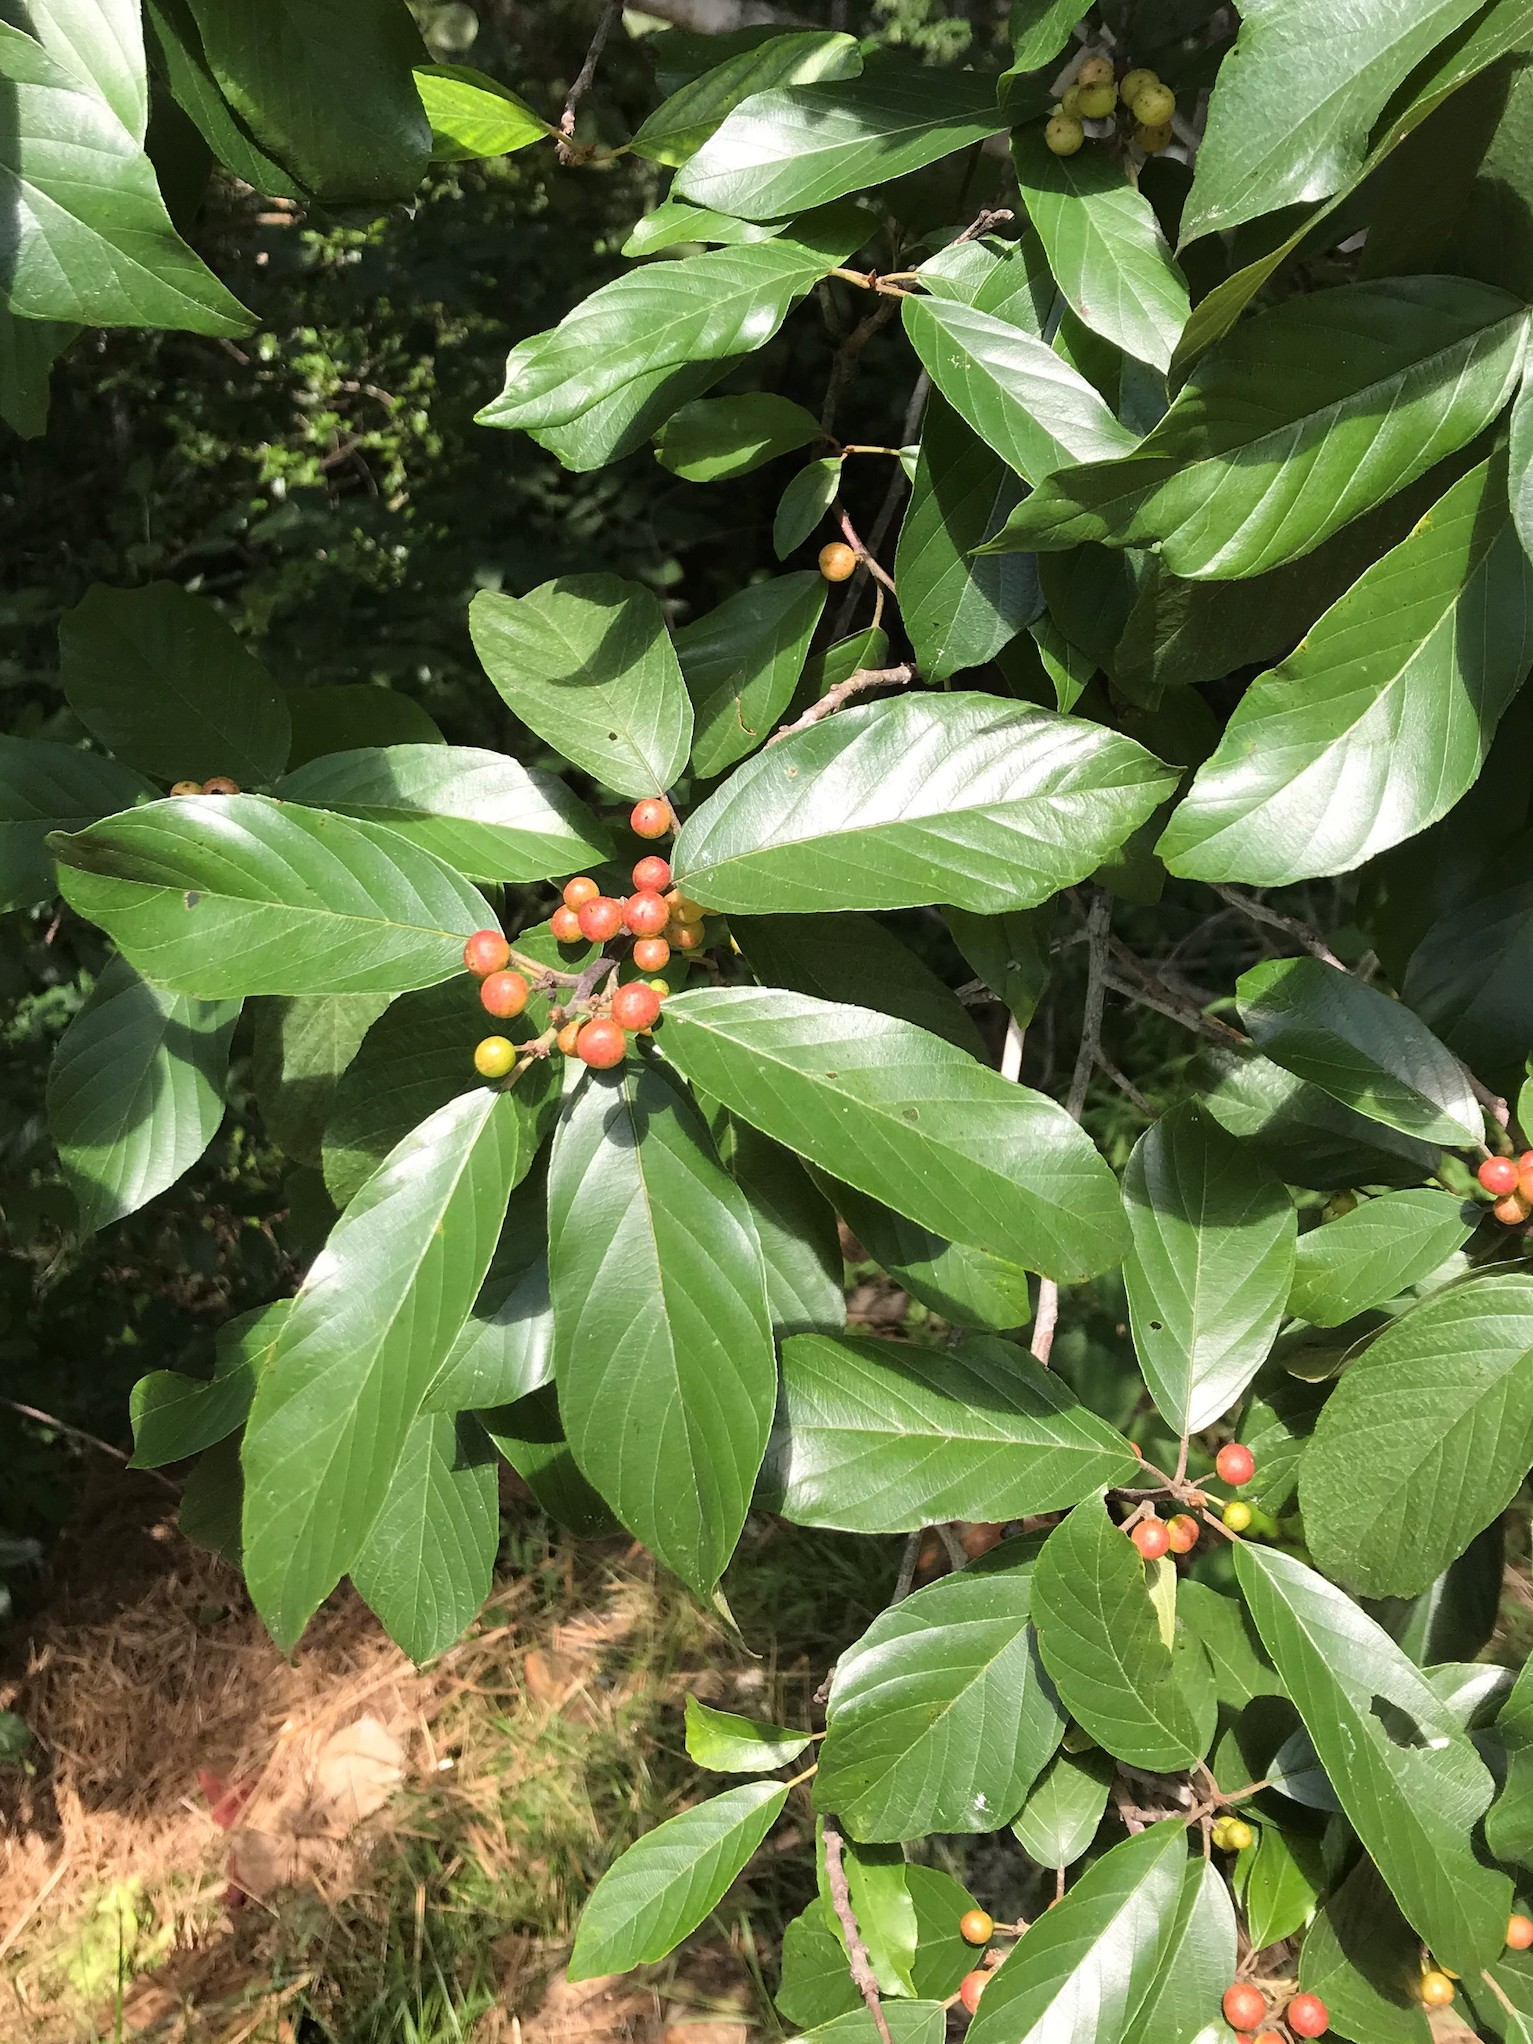 The Scientific Name is Frangula caroliniana [= Rhamnus caroliniana]. You will likely hear them called Carolina Buckthorn. This picture shows the Small tree with distinctive leaf venation and red drupes which eventually turn black. of Frangula caroliniana [= Rhamnus caroliniana]